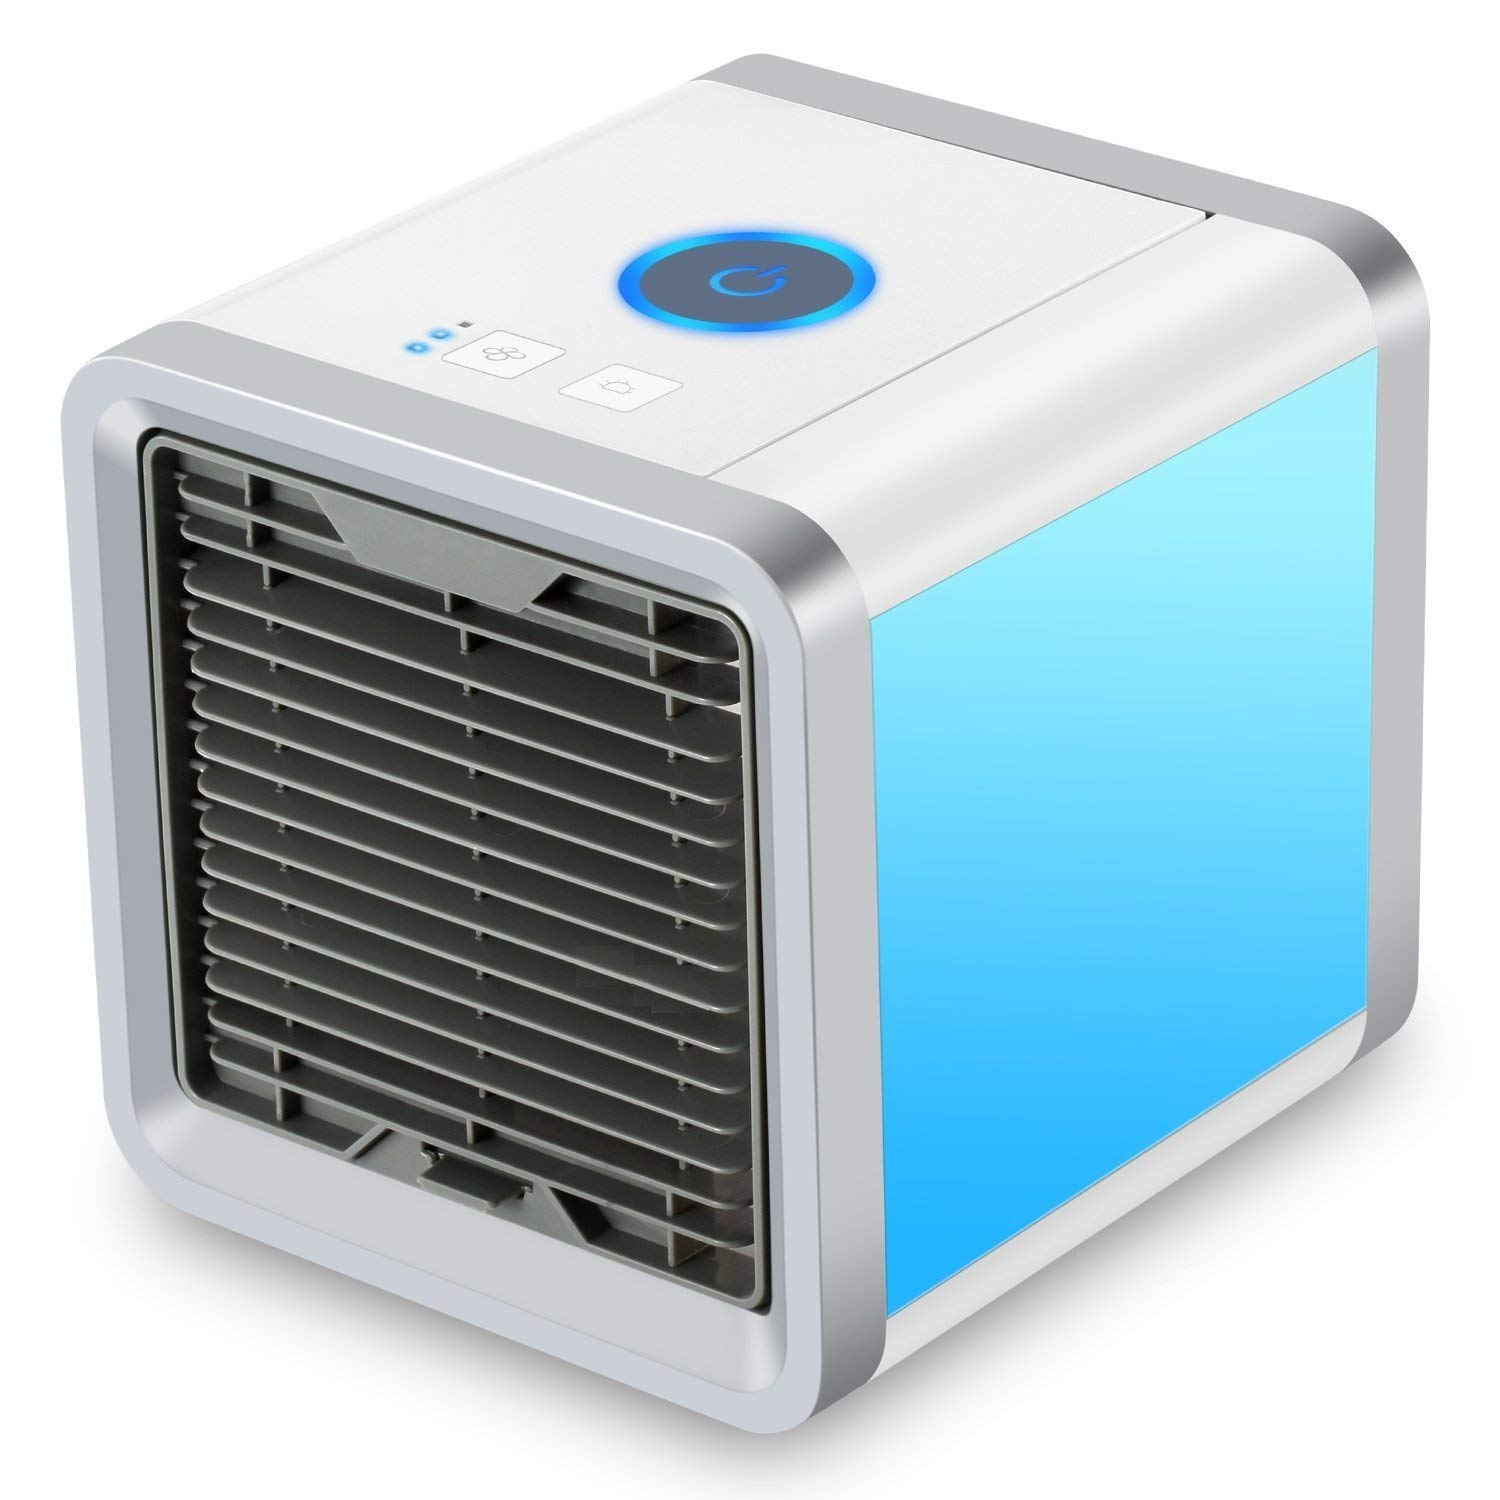 Personal Space Air Cooler, 3 in 1 USB Mini Portable Air Conditioner, Humidifier, Purifier and 7 Colors Nightstand,Desktop Cooling Fan for Office Home Outdoor Travel